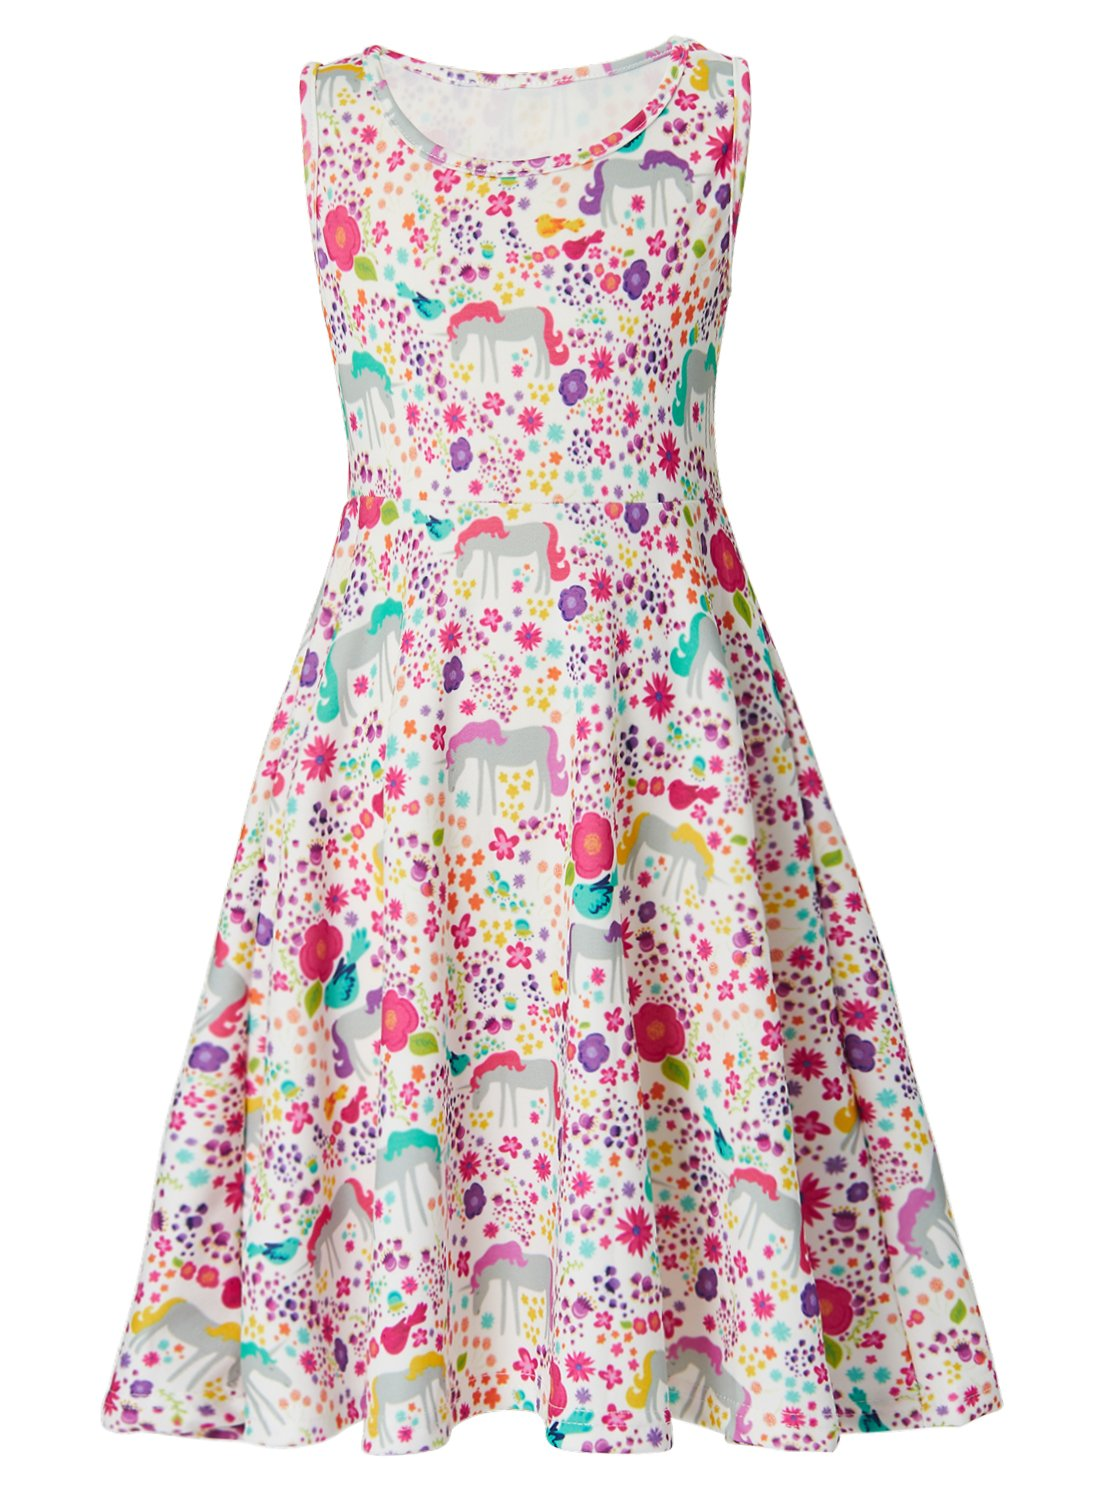 Leapparel Unicorn Pattern Novelty Costume Causal Dress for Little Kid Colorful Floral Beach Boho Dress Print Sleeveless Skirt for Girls 8-9 Year Old